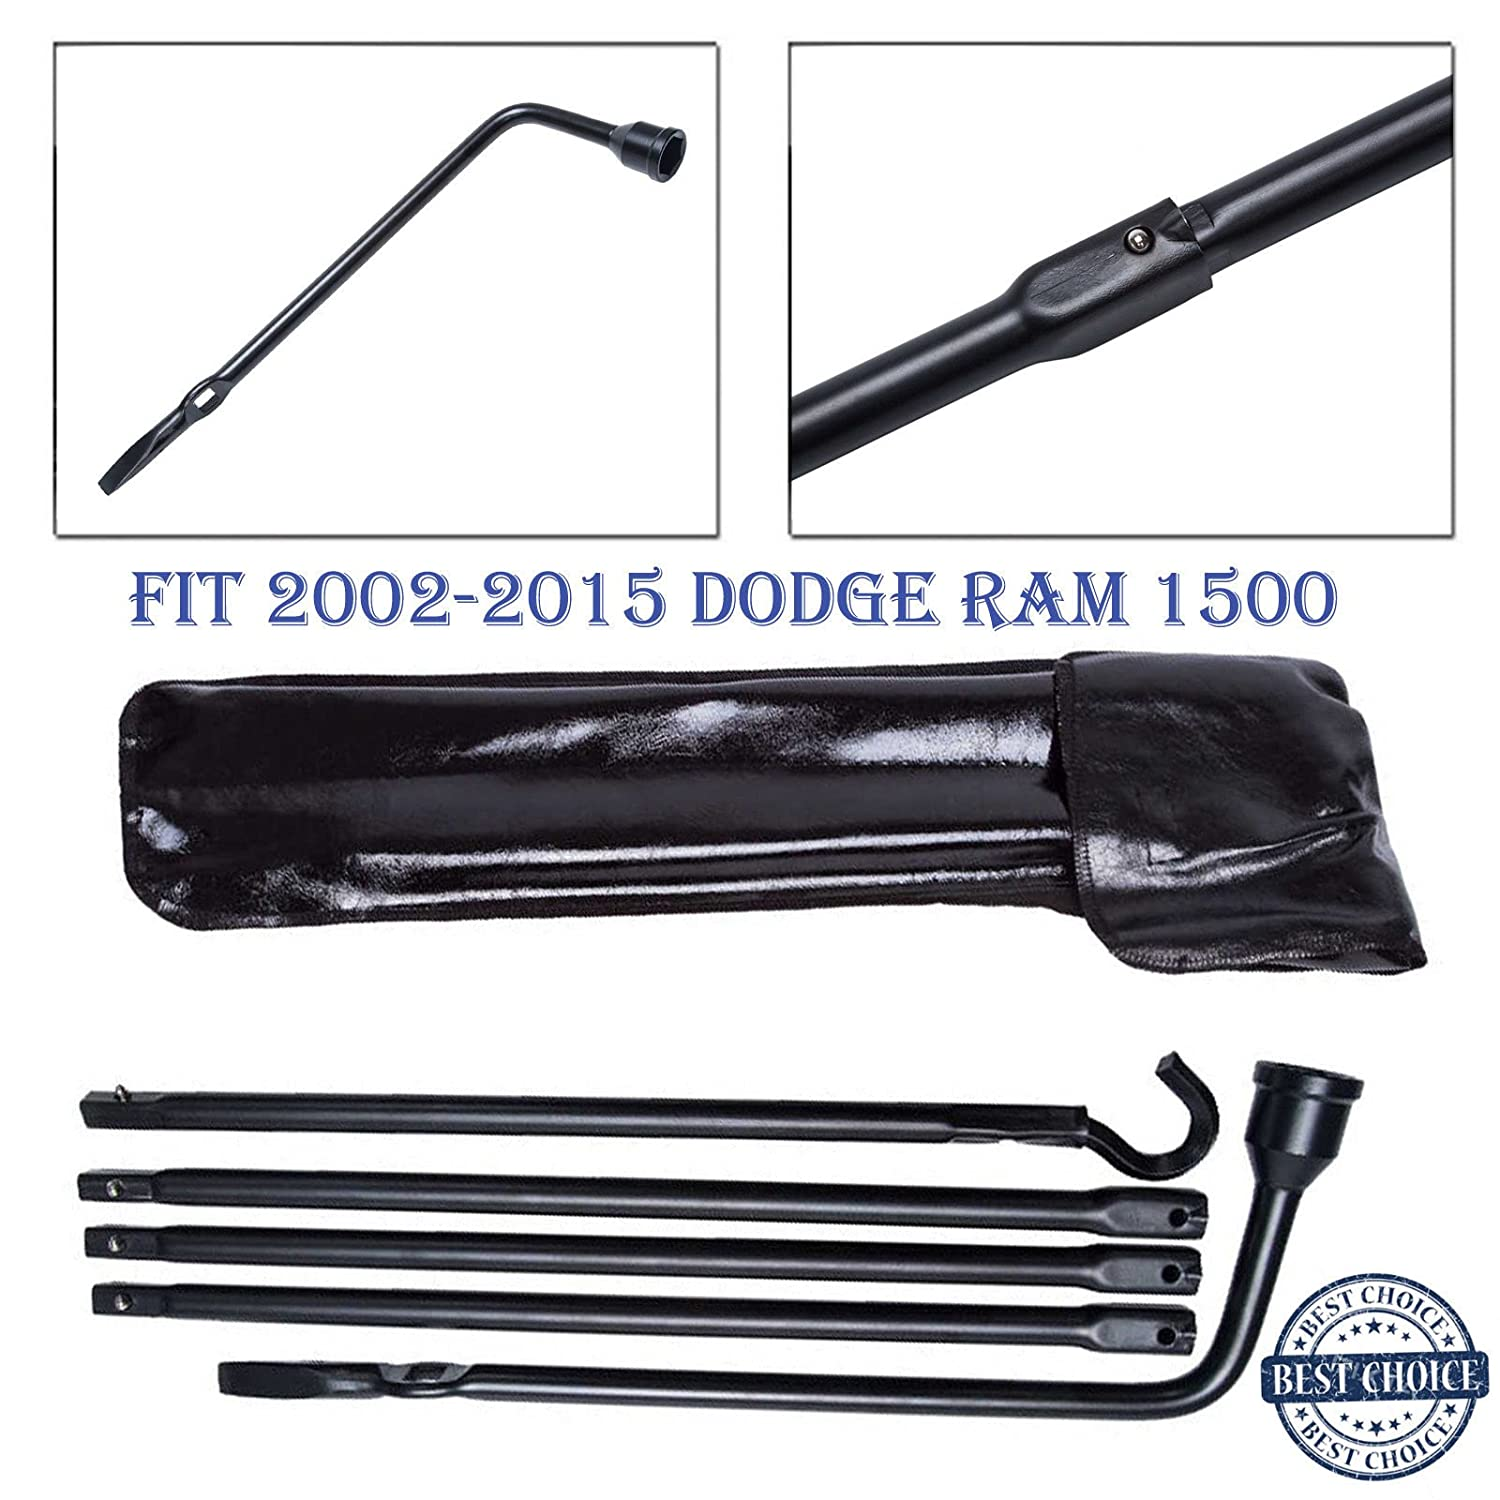 2017 New Spare Tire Kit Lug Wrench Tool Replacement fit 2002-2015 Dodge Ram 1500 with Bag - 2 Year Warranty Autobaba 4333085542